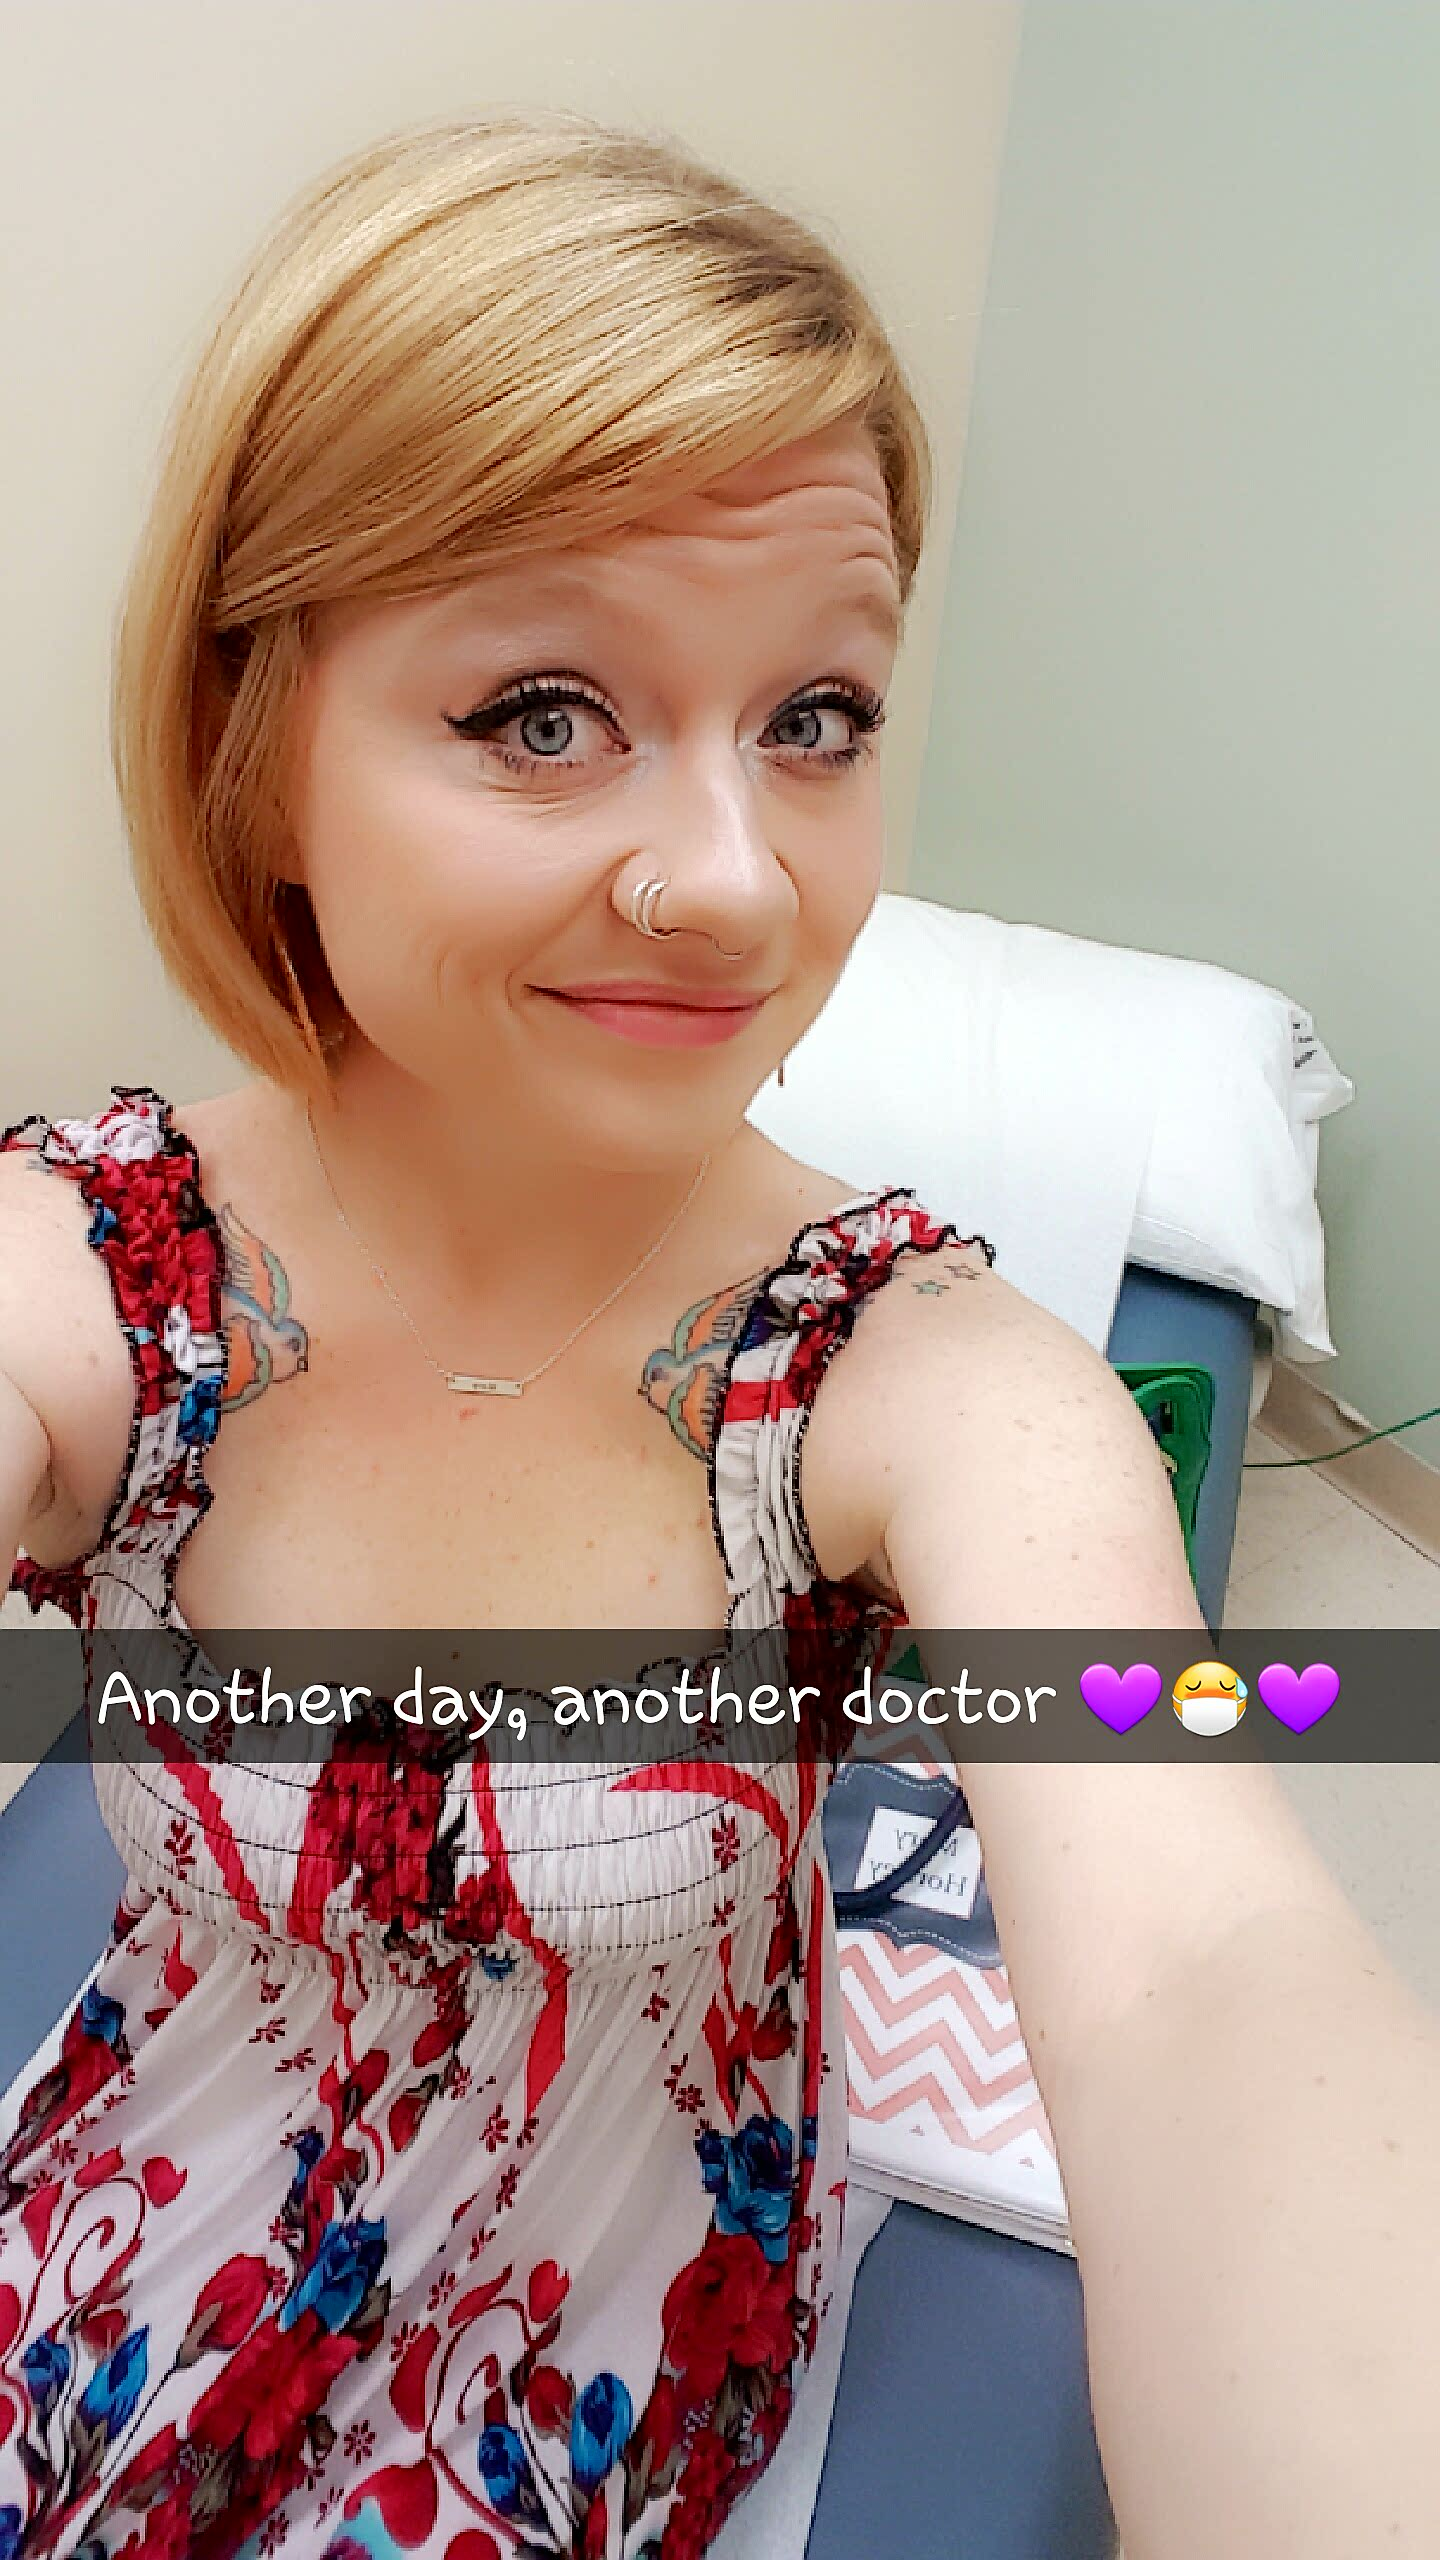 Another day, Another Doctor - It Could Be Worse Blog